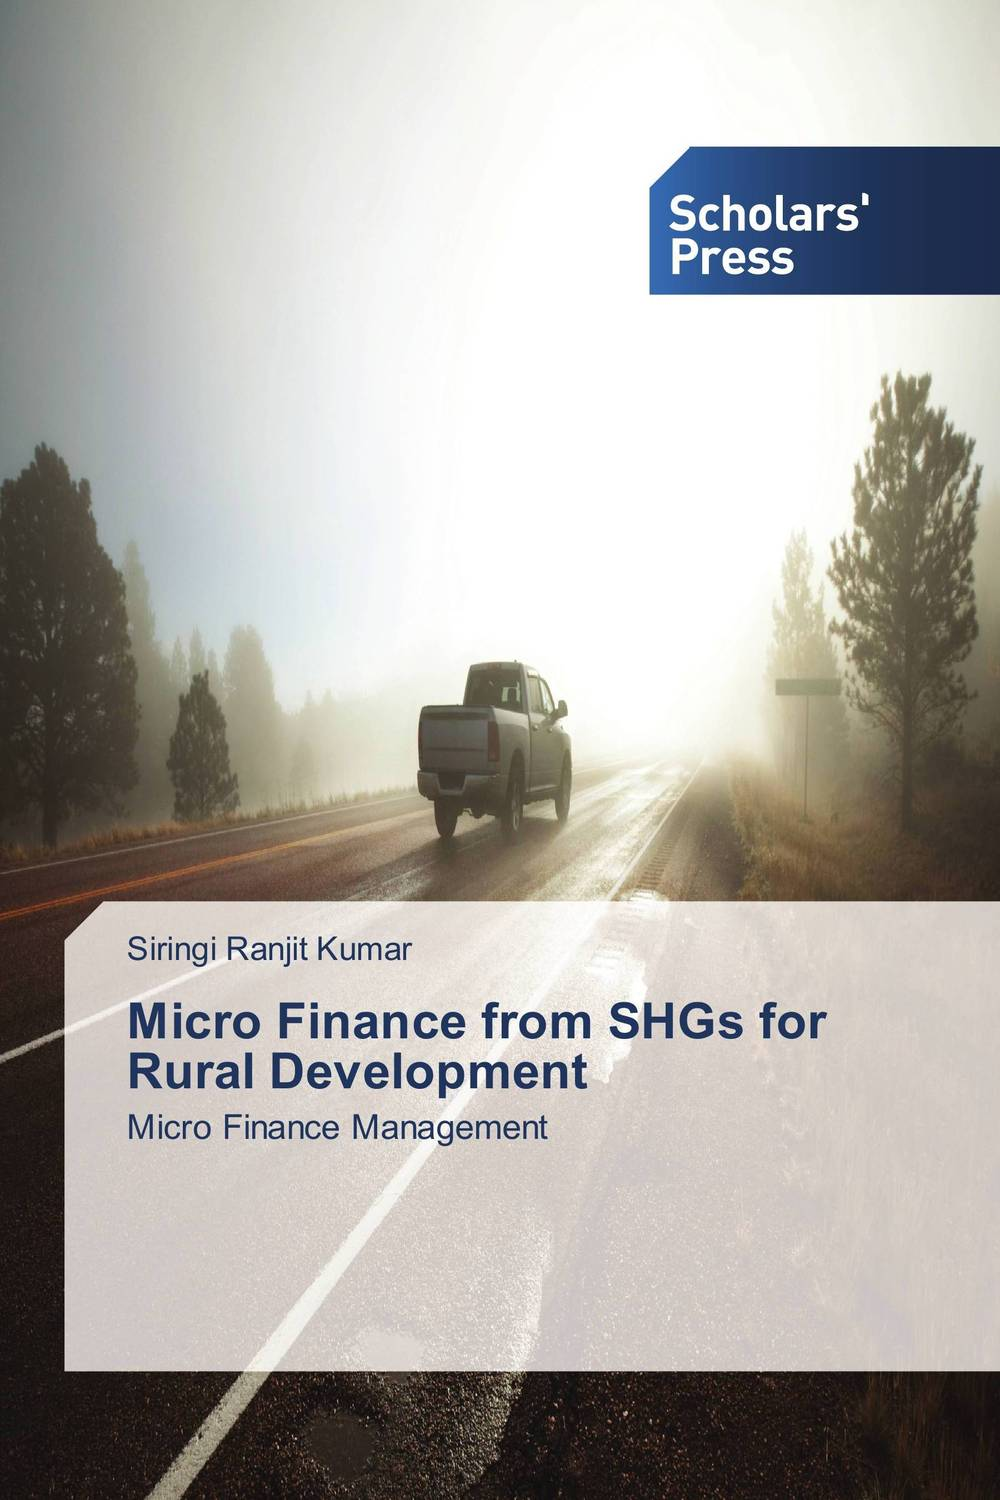 Micro Finance from SHGs for Rural Development jaynal ud din ahmed and mohd abdul rashid institutional finance for micro and small entreprises in india